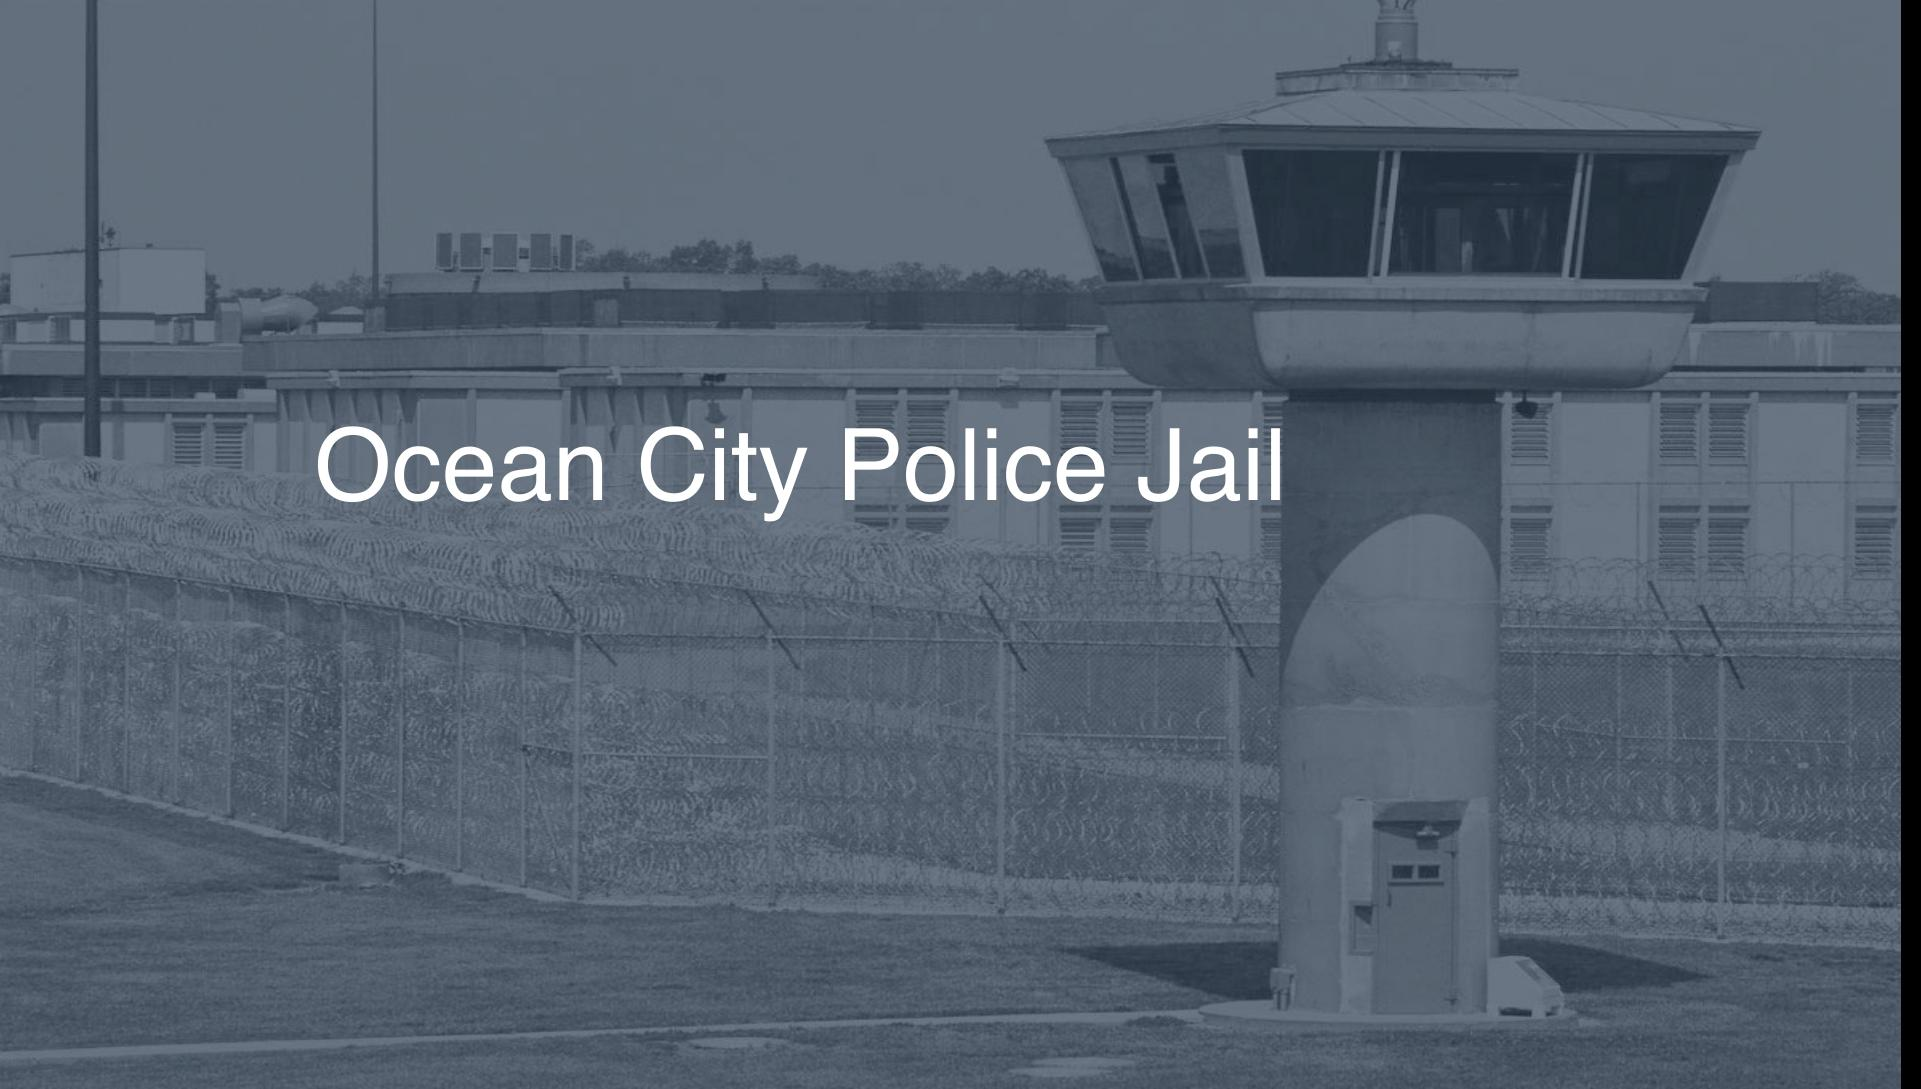 Ocean City Police Jail Inmate Search, Lookup & Services - Pigeonly